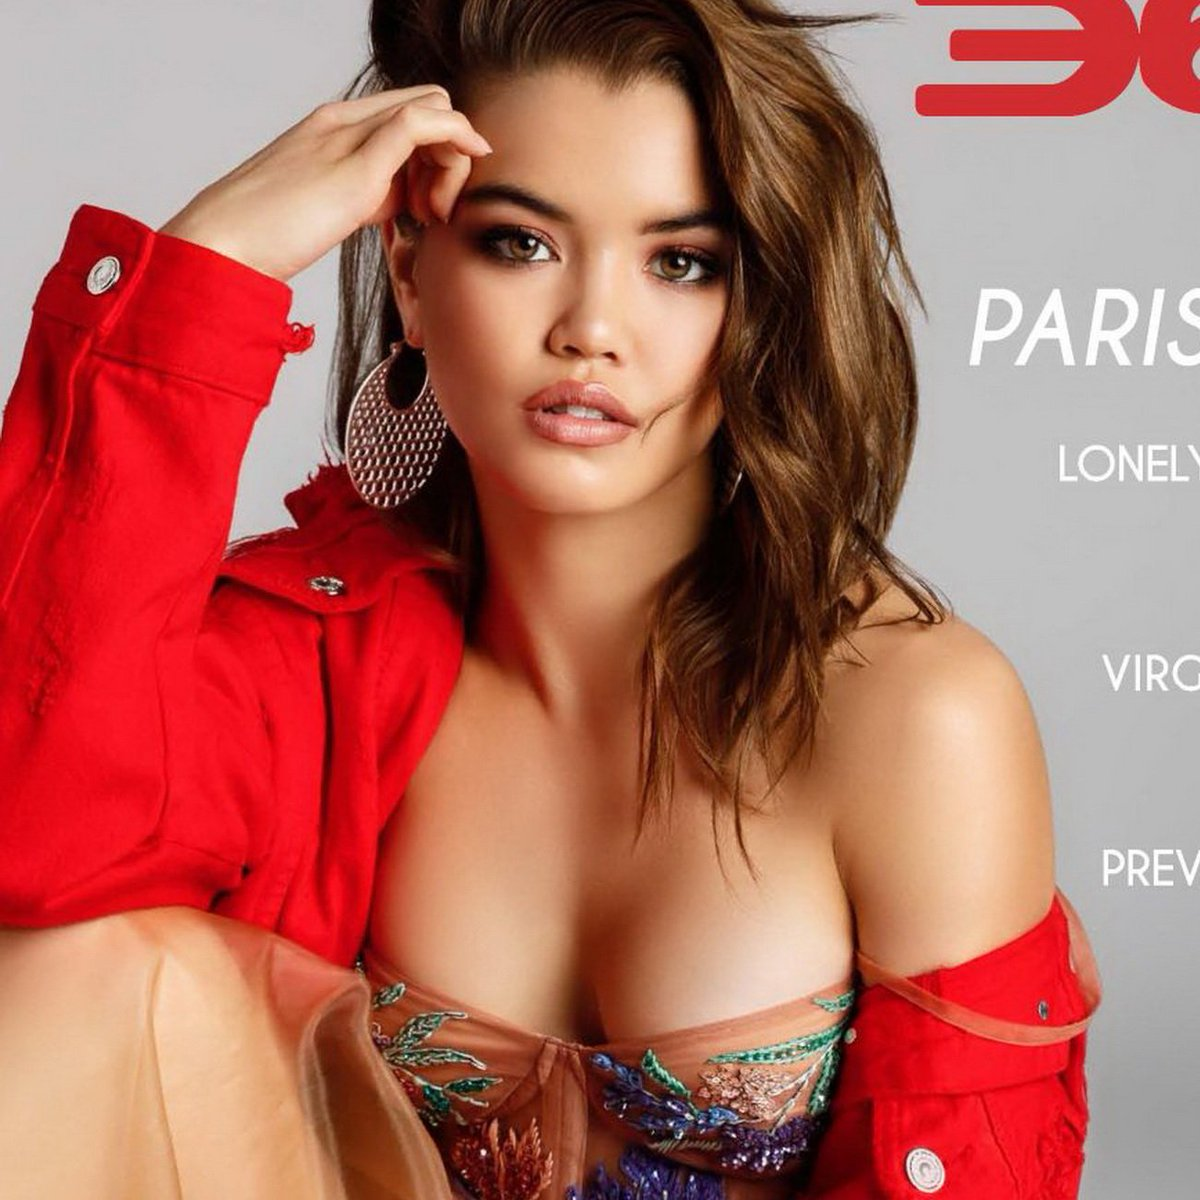 Sexy Paris Berelc naked (84 photo), Sexy, Fappening, Boobs, braless 2017